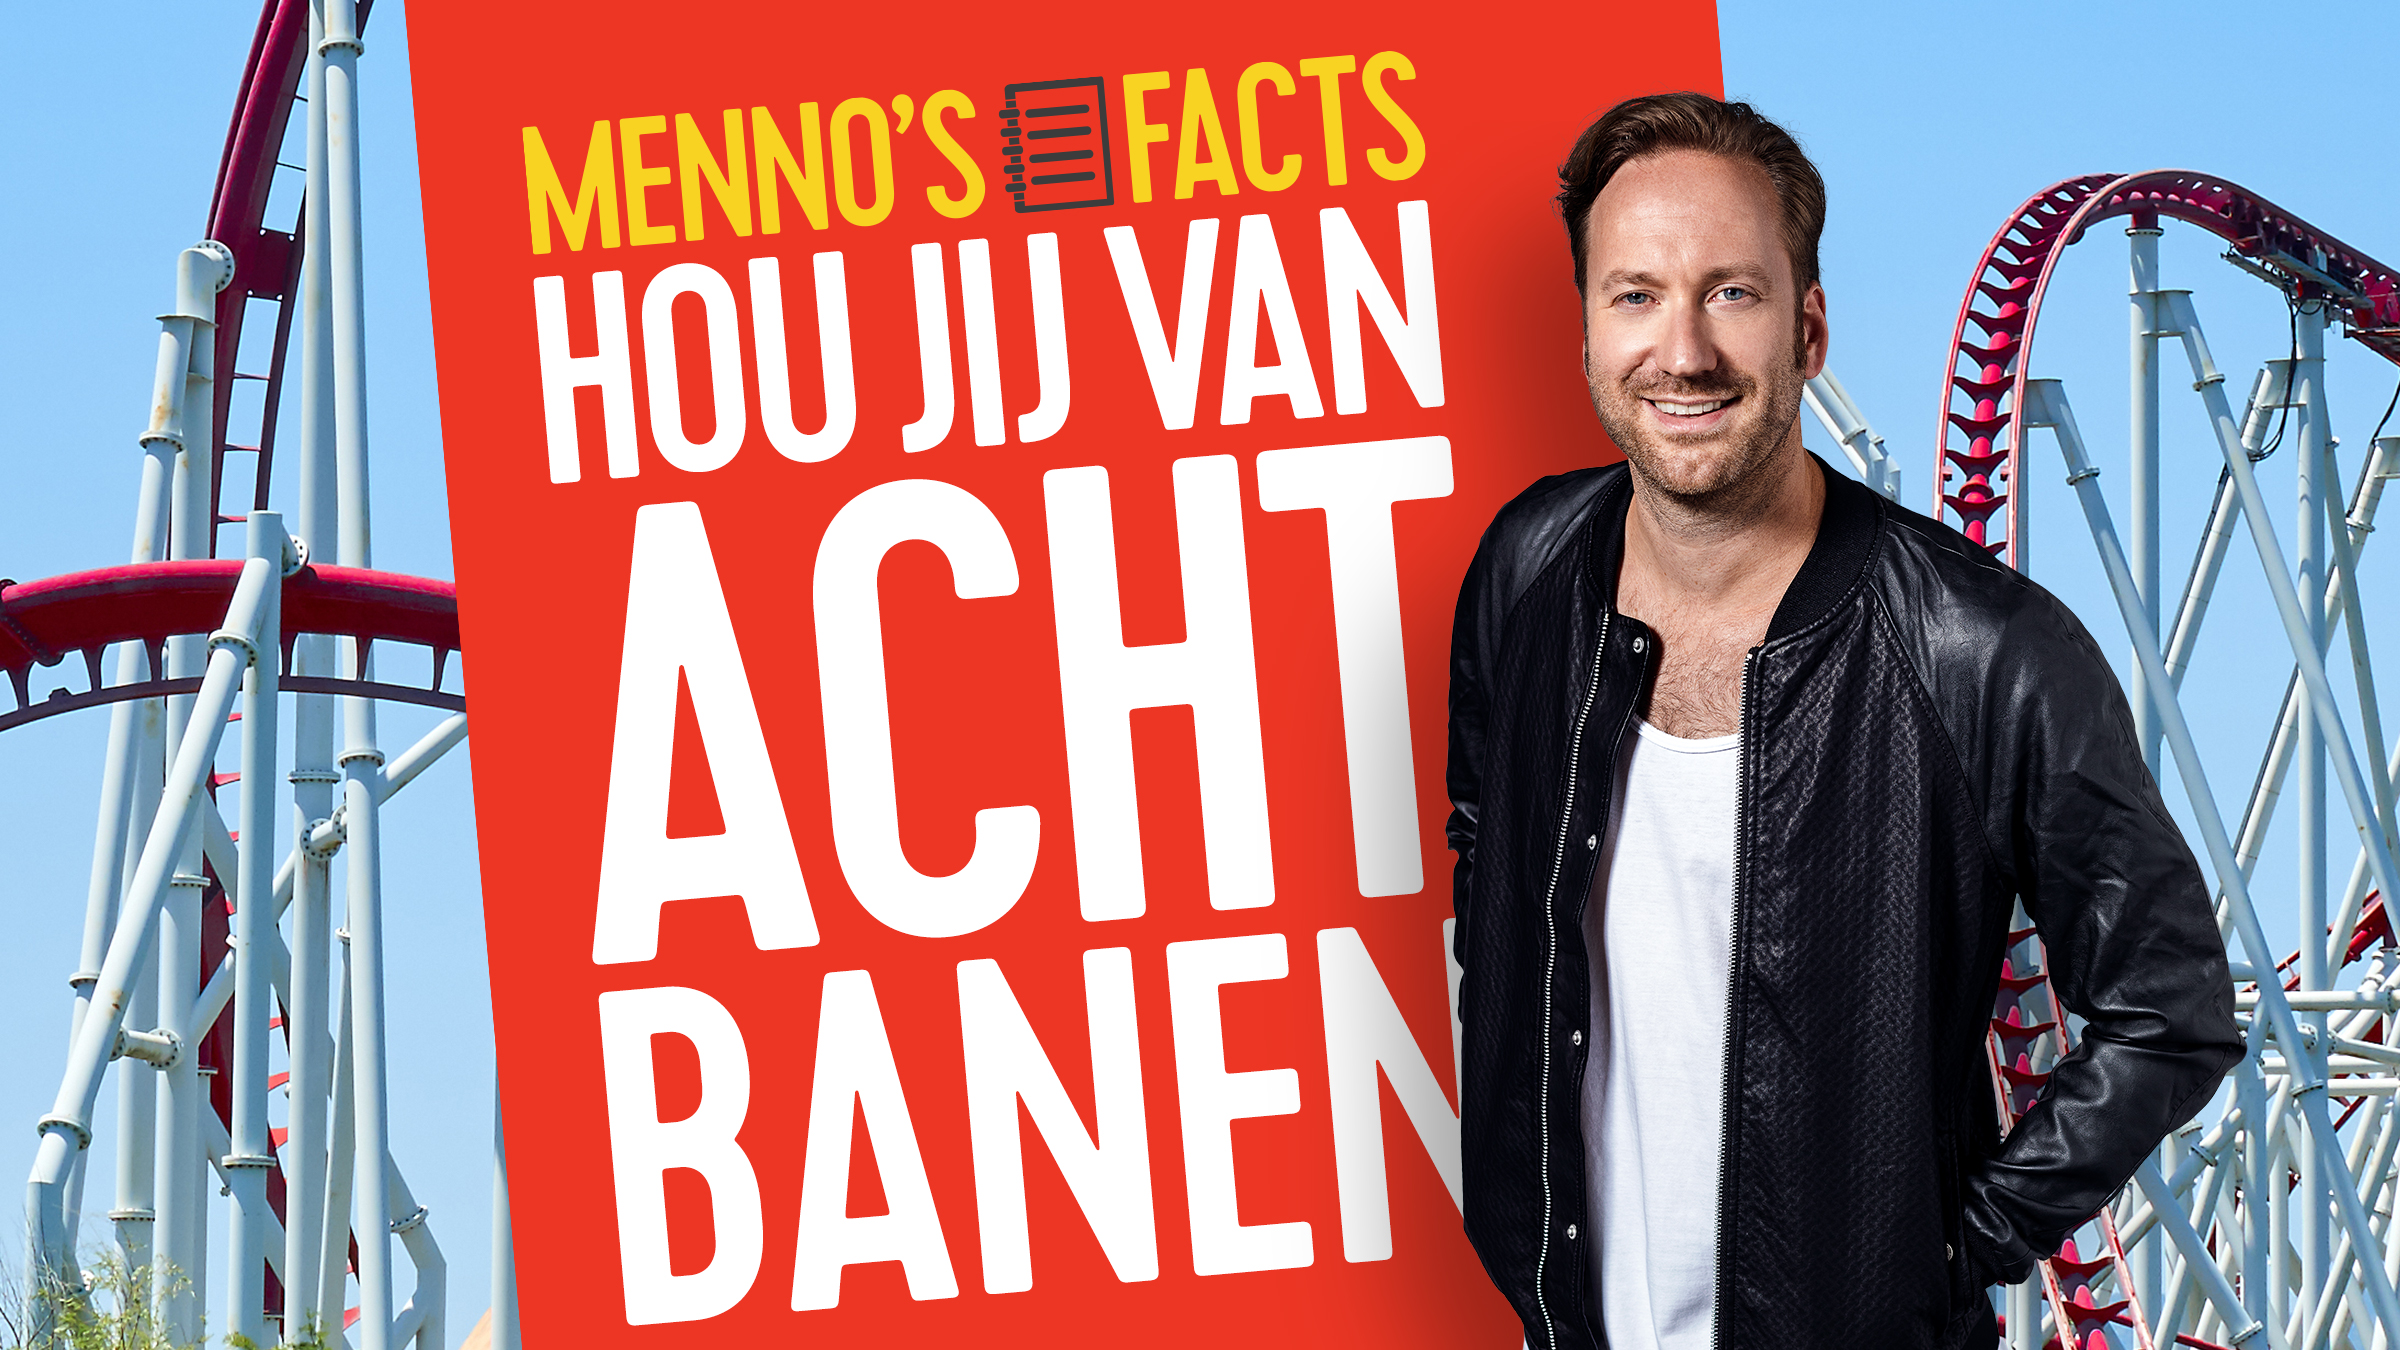 Achtbaan music teaser basis mennosfacts17